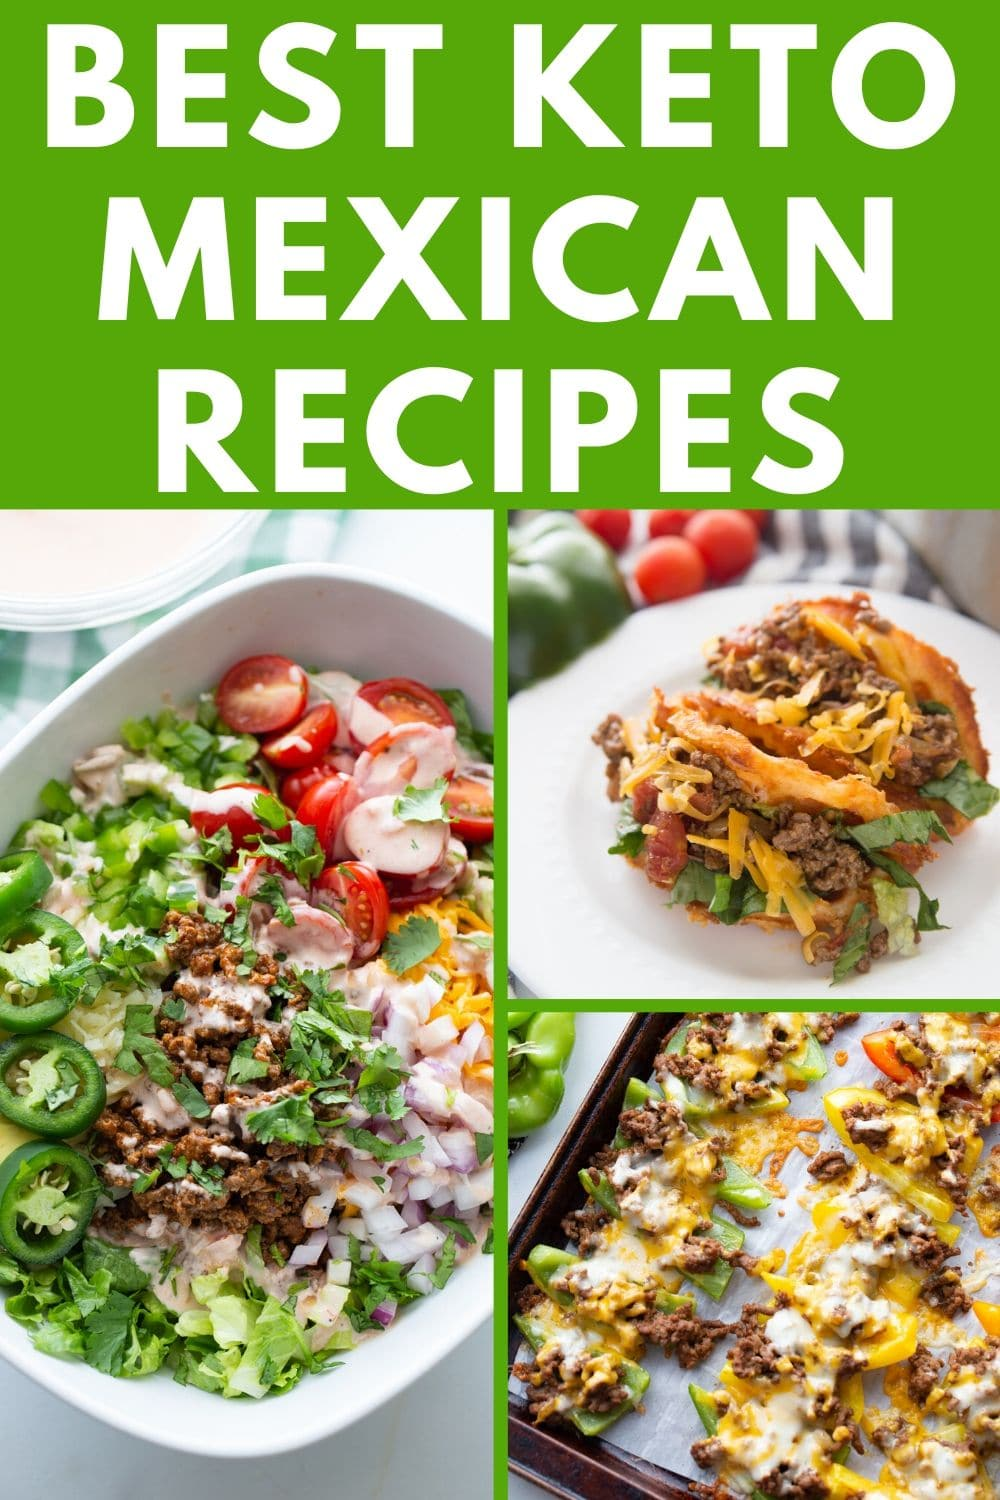 best Keto Mexican recipes collage with three recipe images